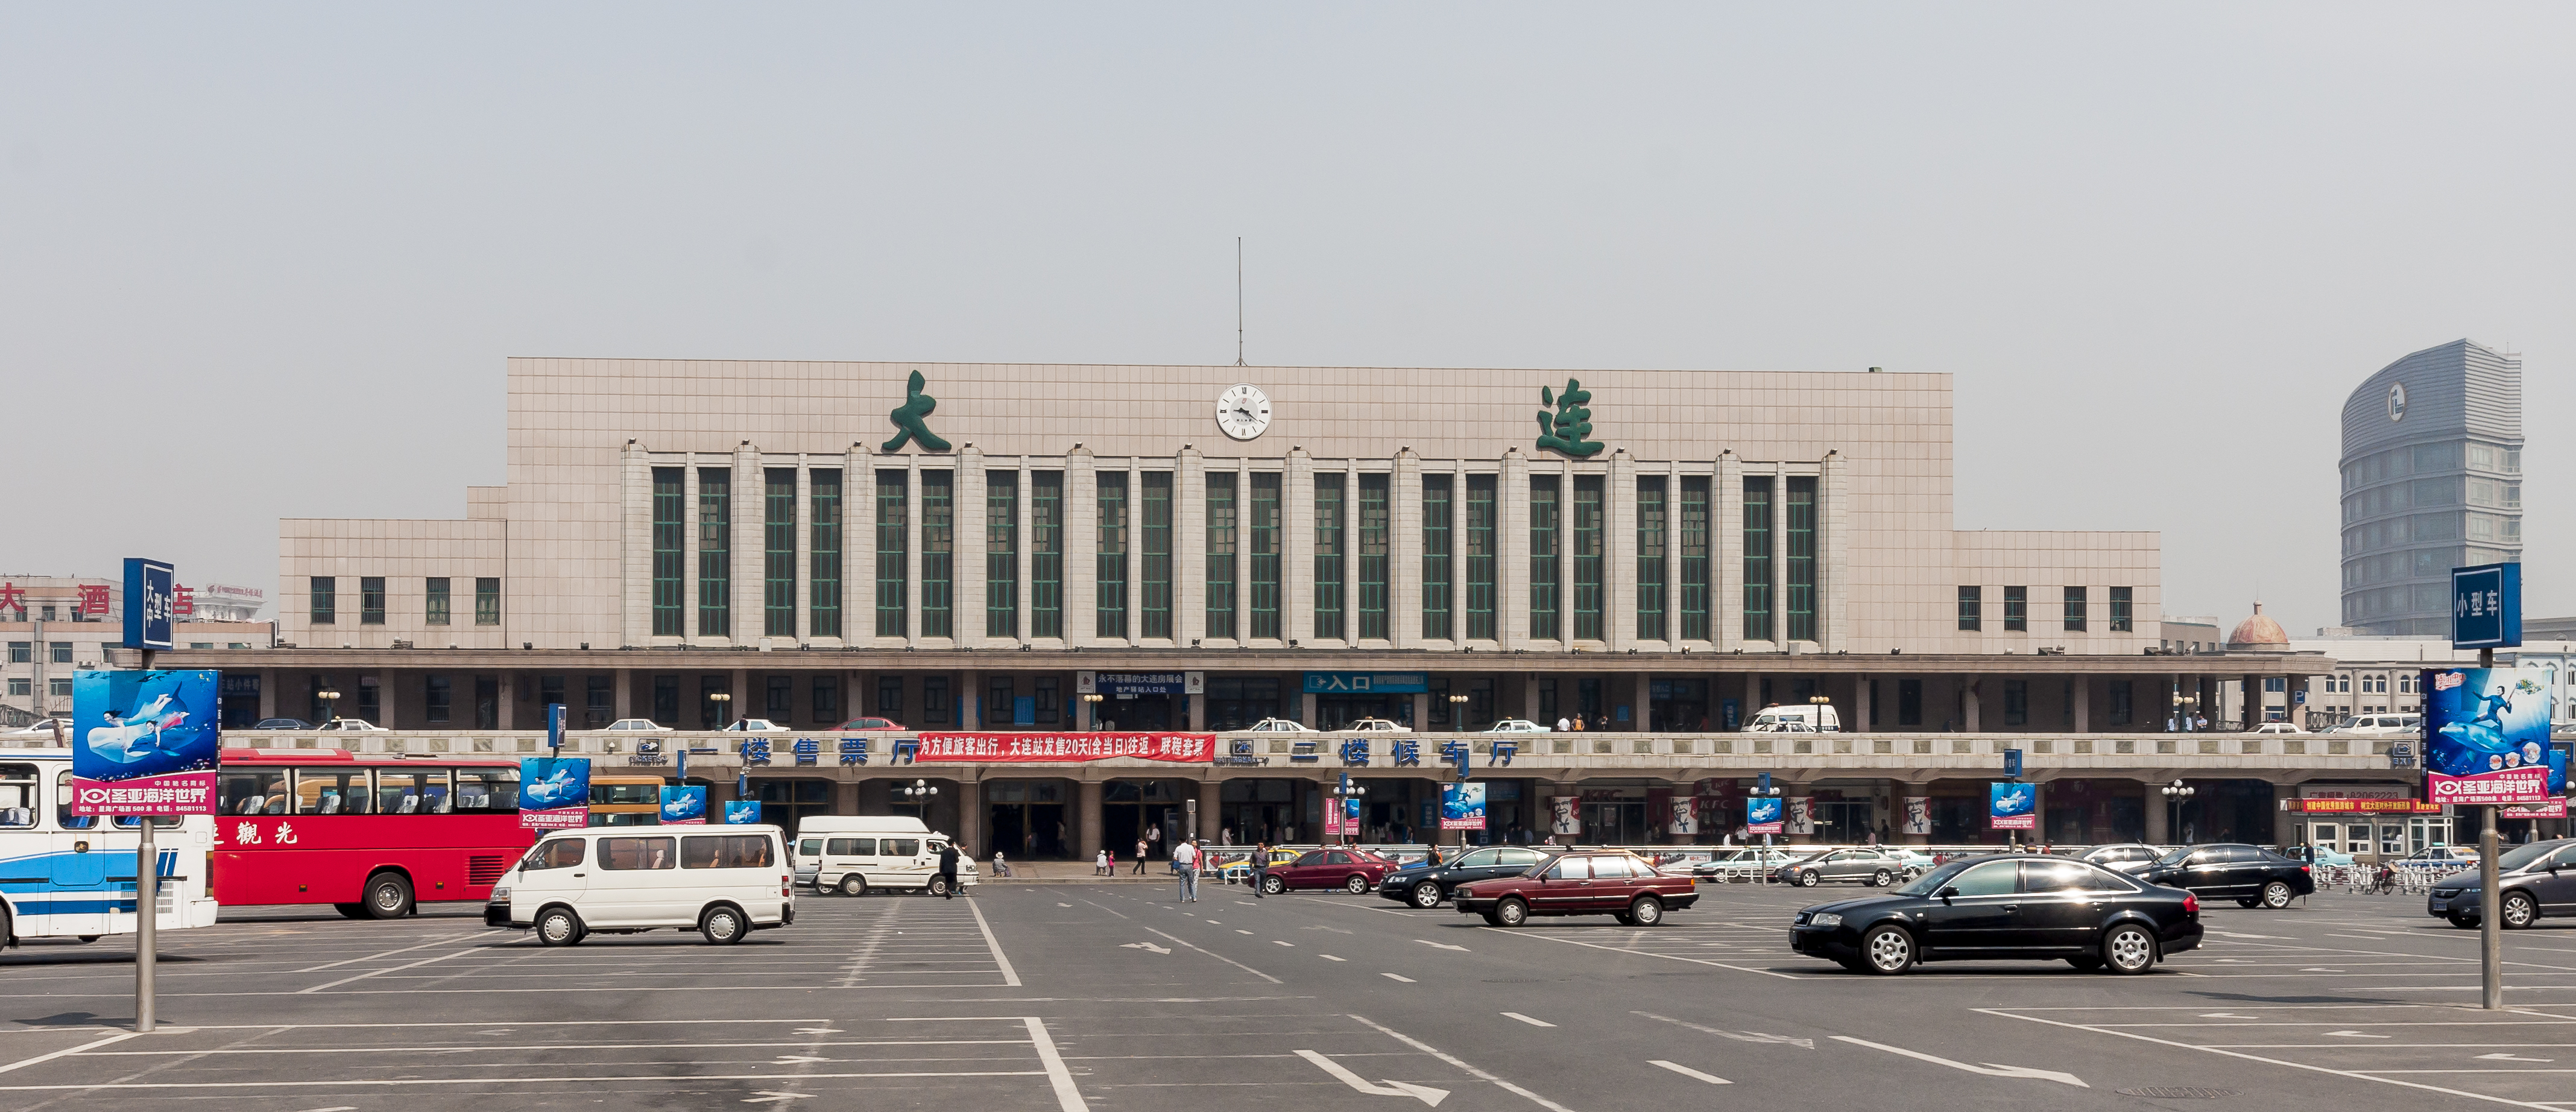 Dalian China Dalian-Railway-Station-02